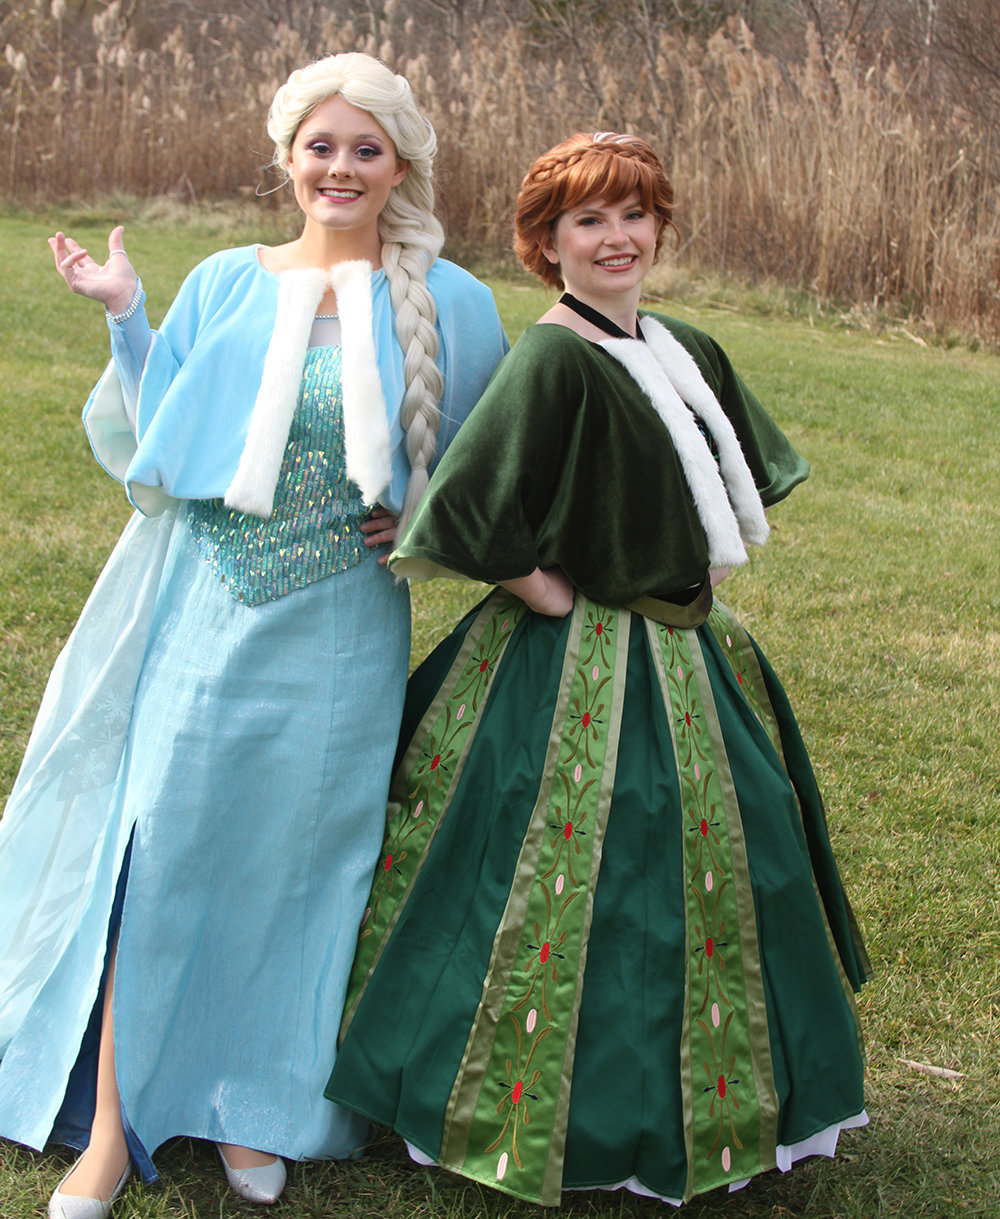 Elsa (Rory Myles) and Anna (Jessica Downing) of Frozen greeted young visitors on Nov. 21 at Highland's Lilly Rae in the Hamlet.